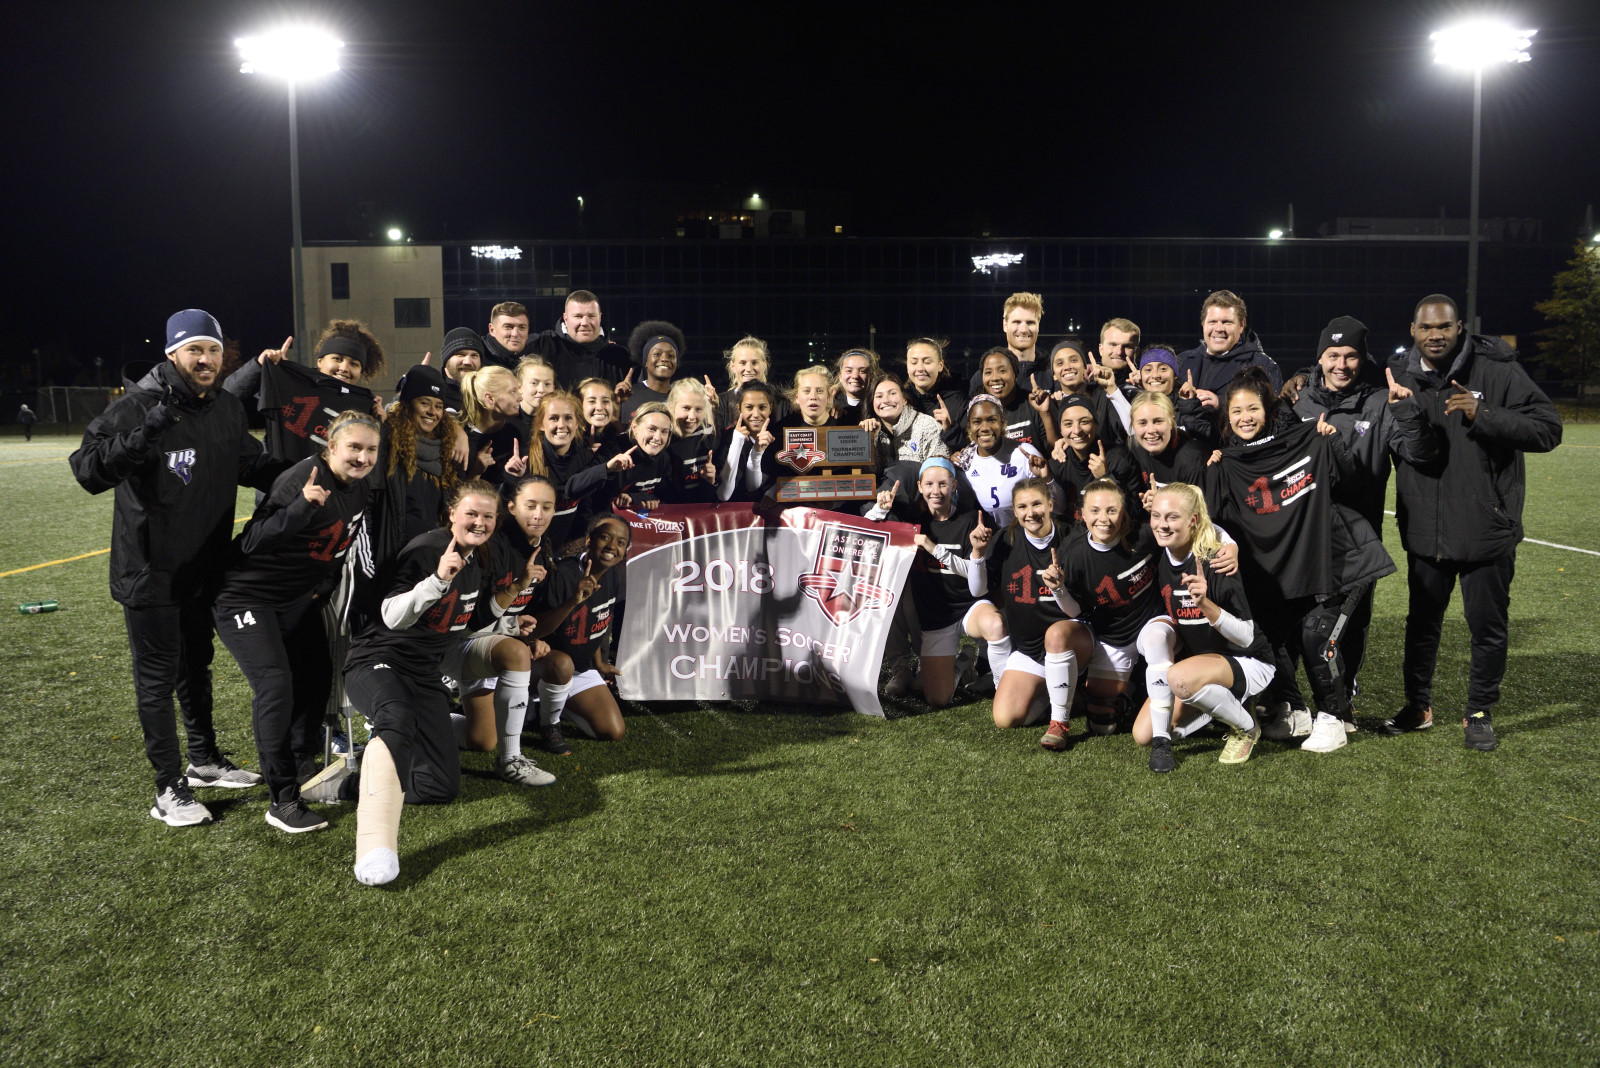 Bridgeport Women's Soccer Claims 2018 ECC Championship Tournament Crown With 2-1 Win Over LIU Post